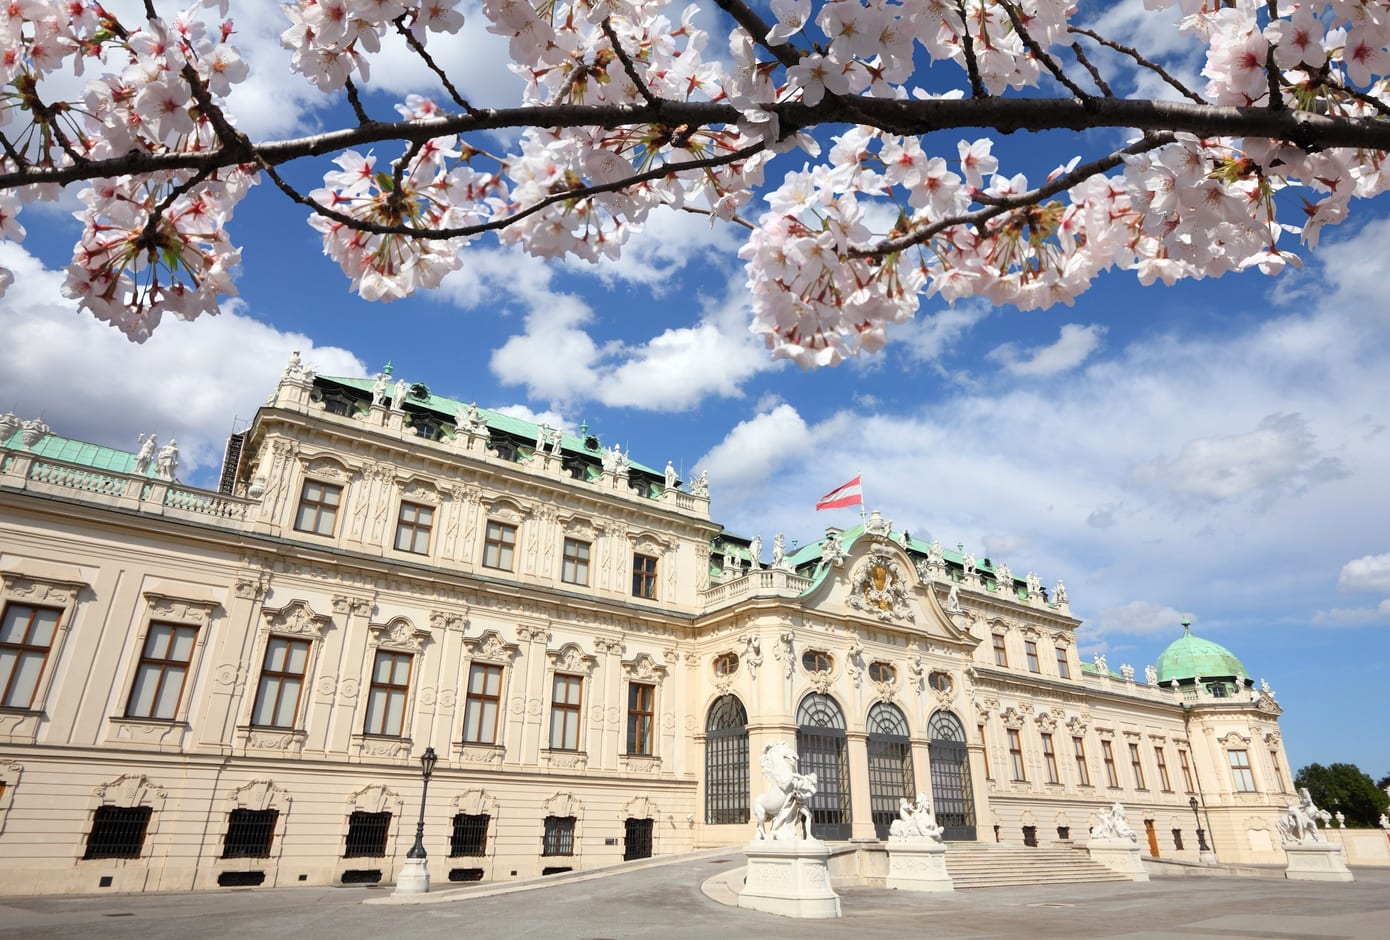 Cherry blossom tree and the Belvedere Palace in Vienna, Austria.